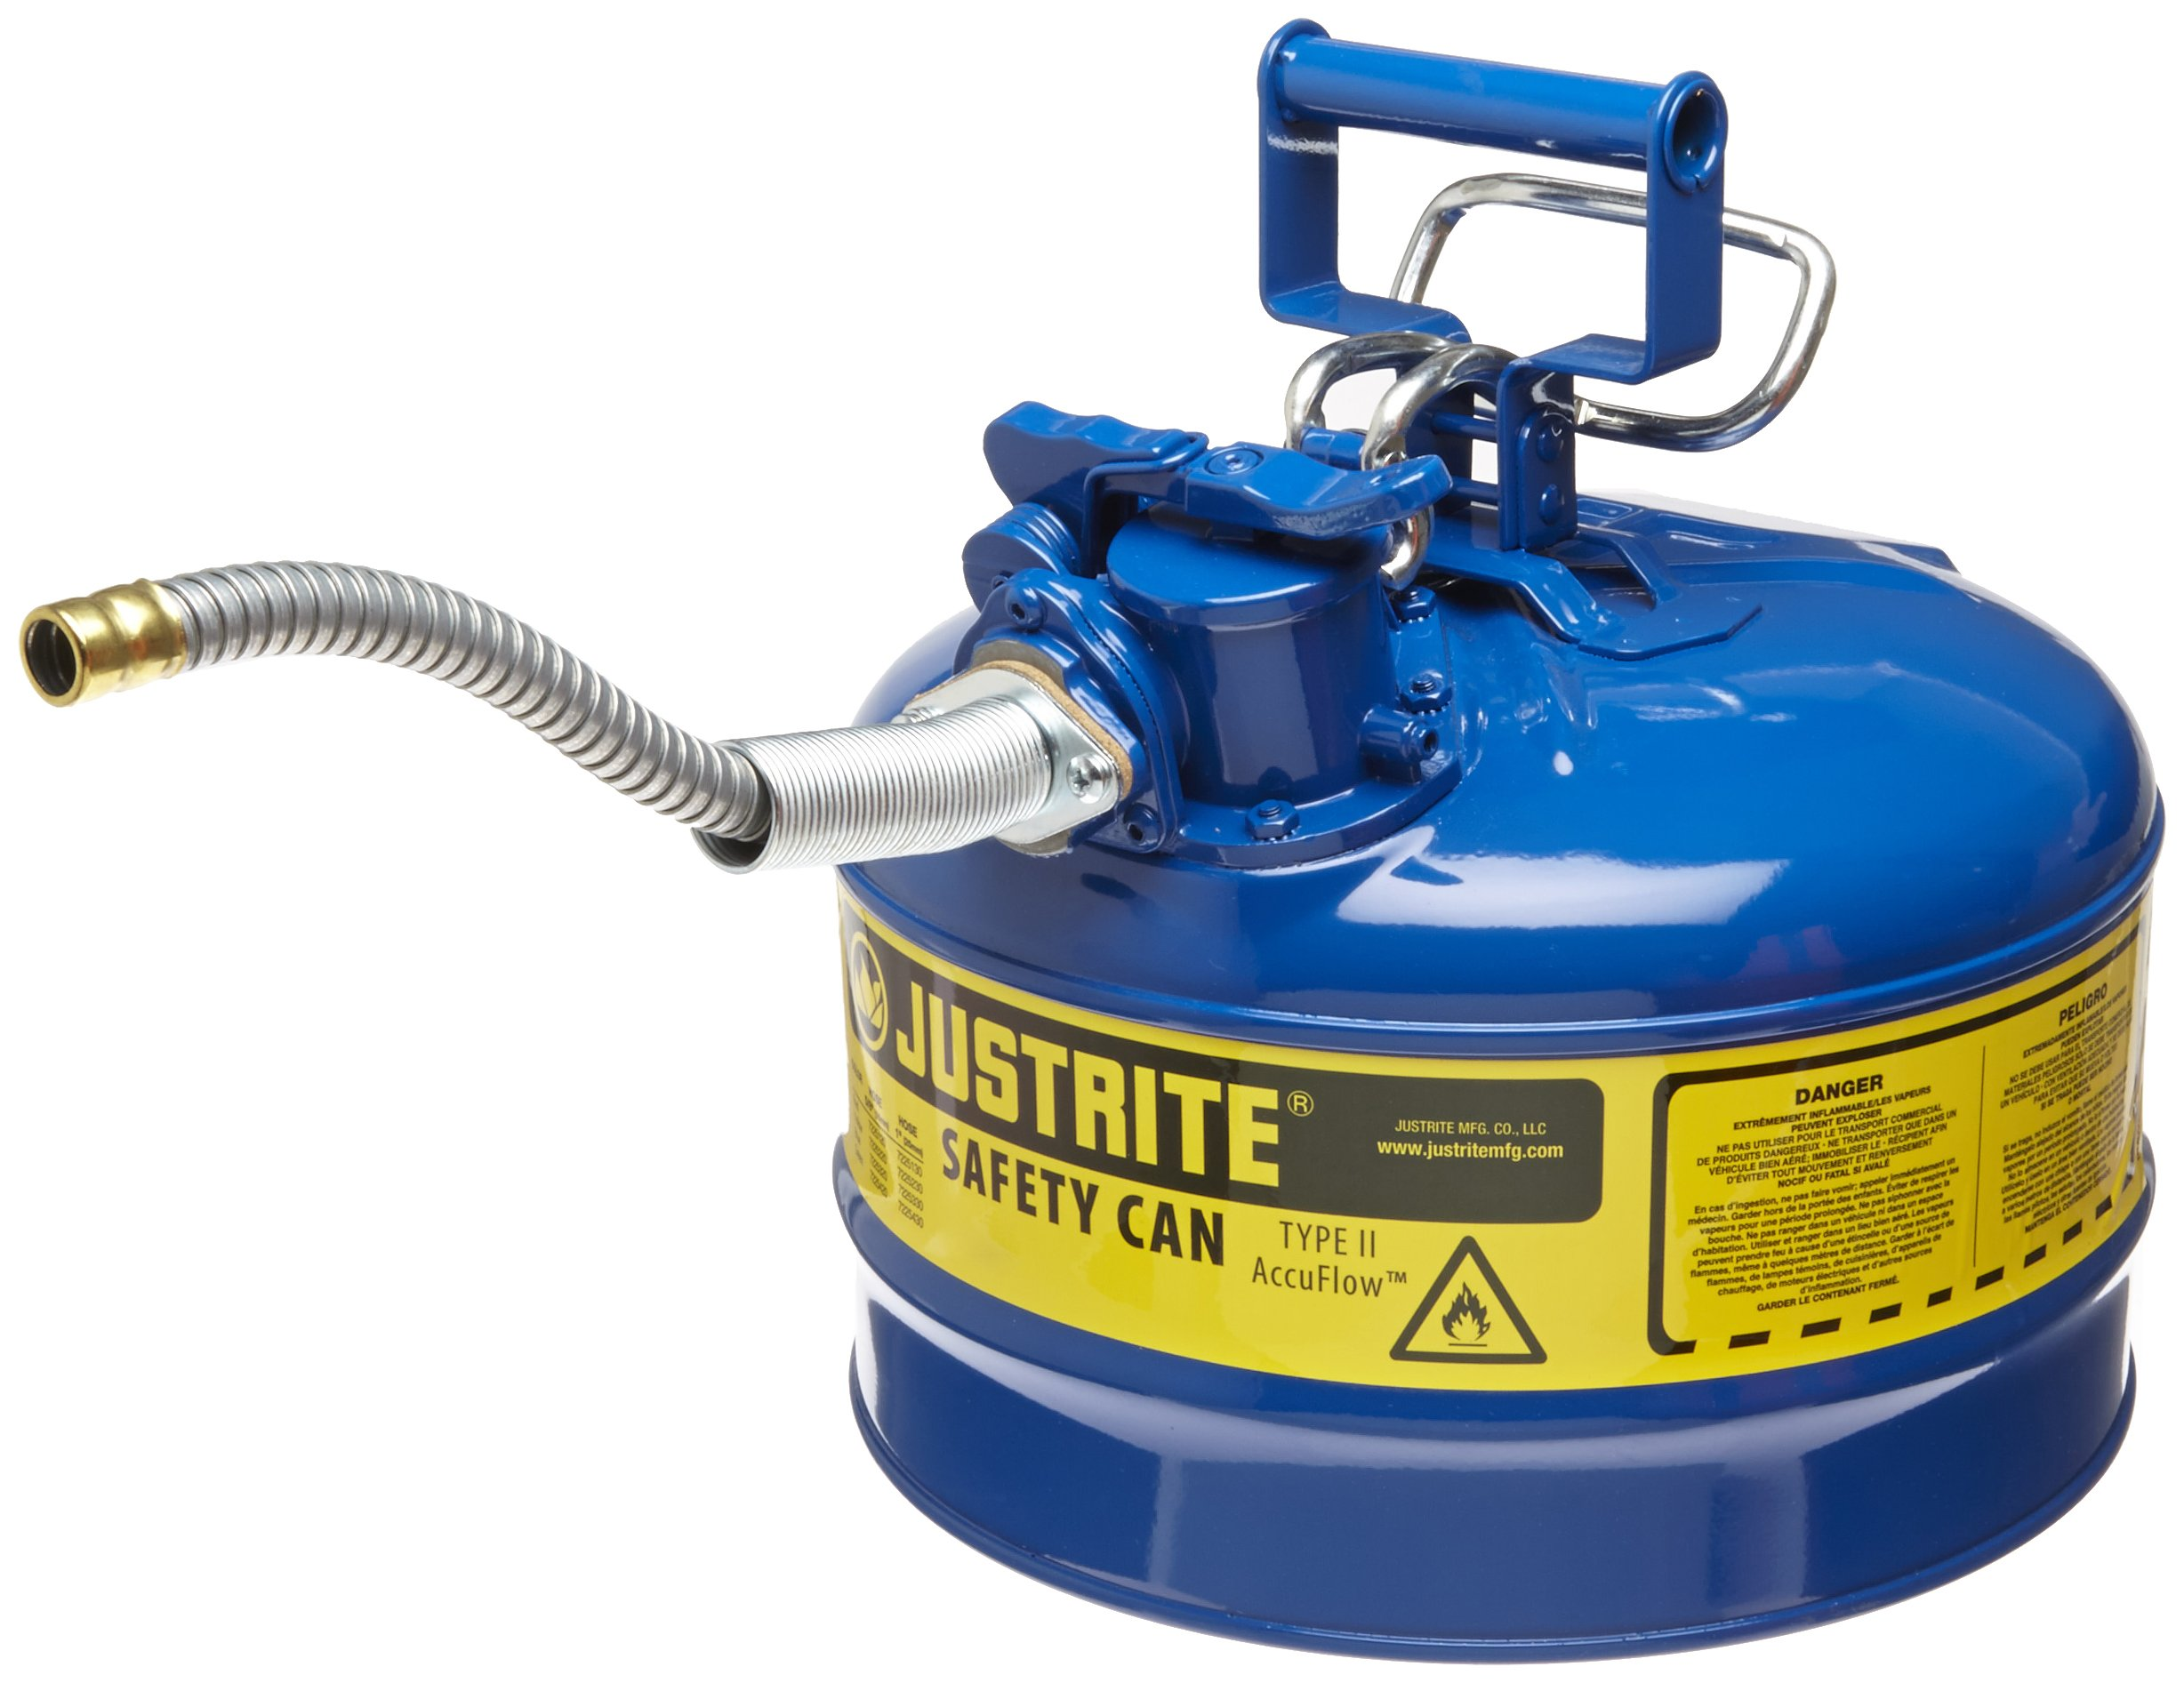 Justrite AccuFlow 7225320 Type II Galvanized Steel Safety Can with 5/8'' Flexible Spout, 2.5 Gallon Capacity, Blue